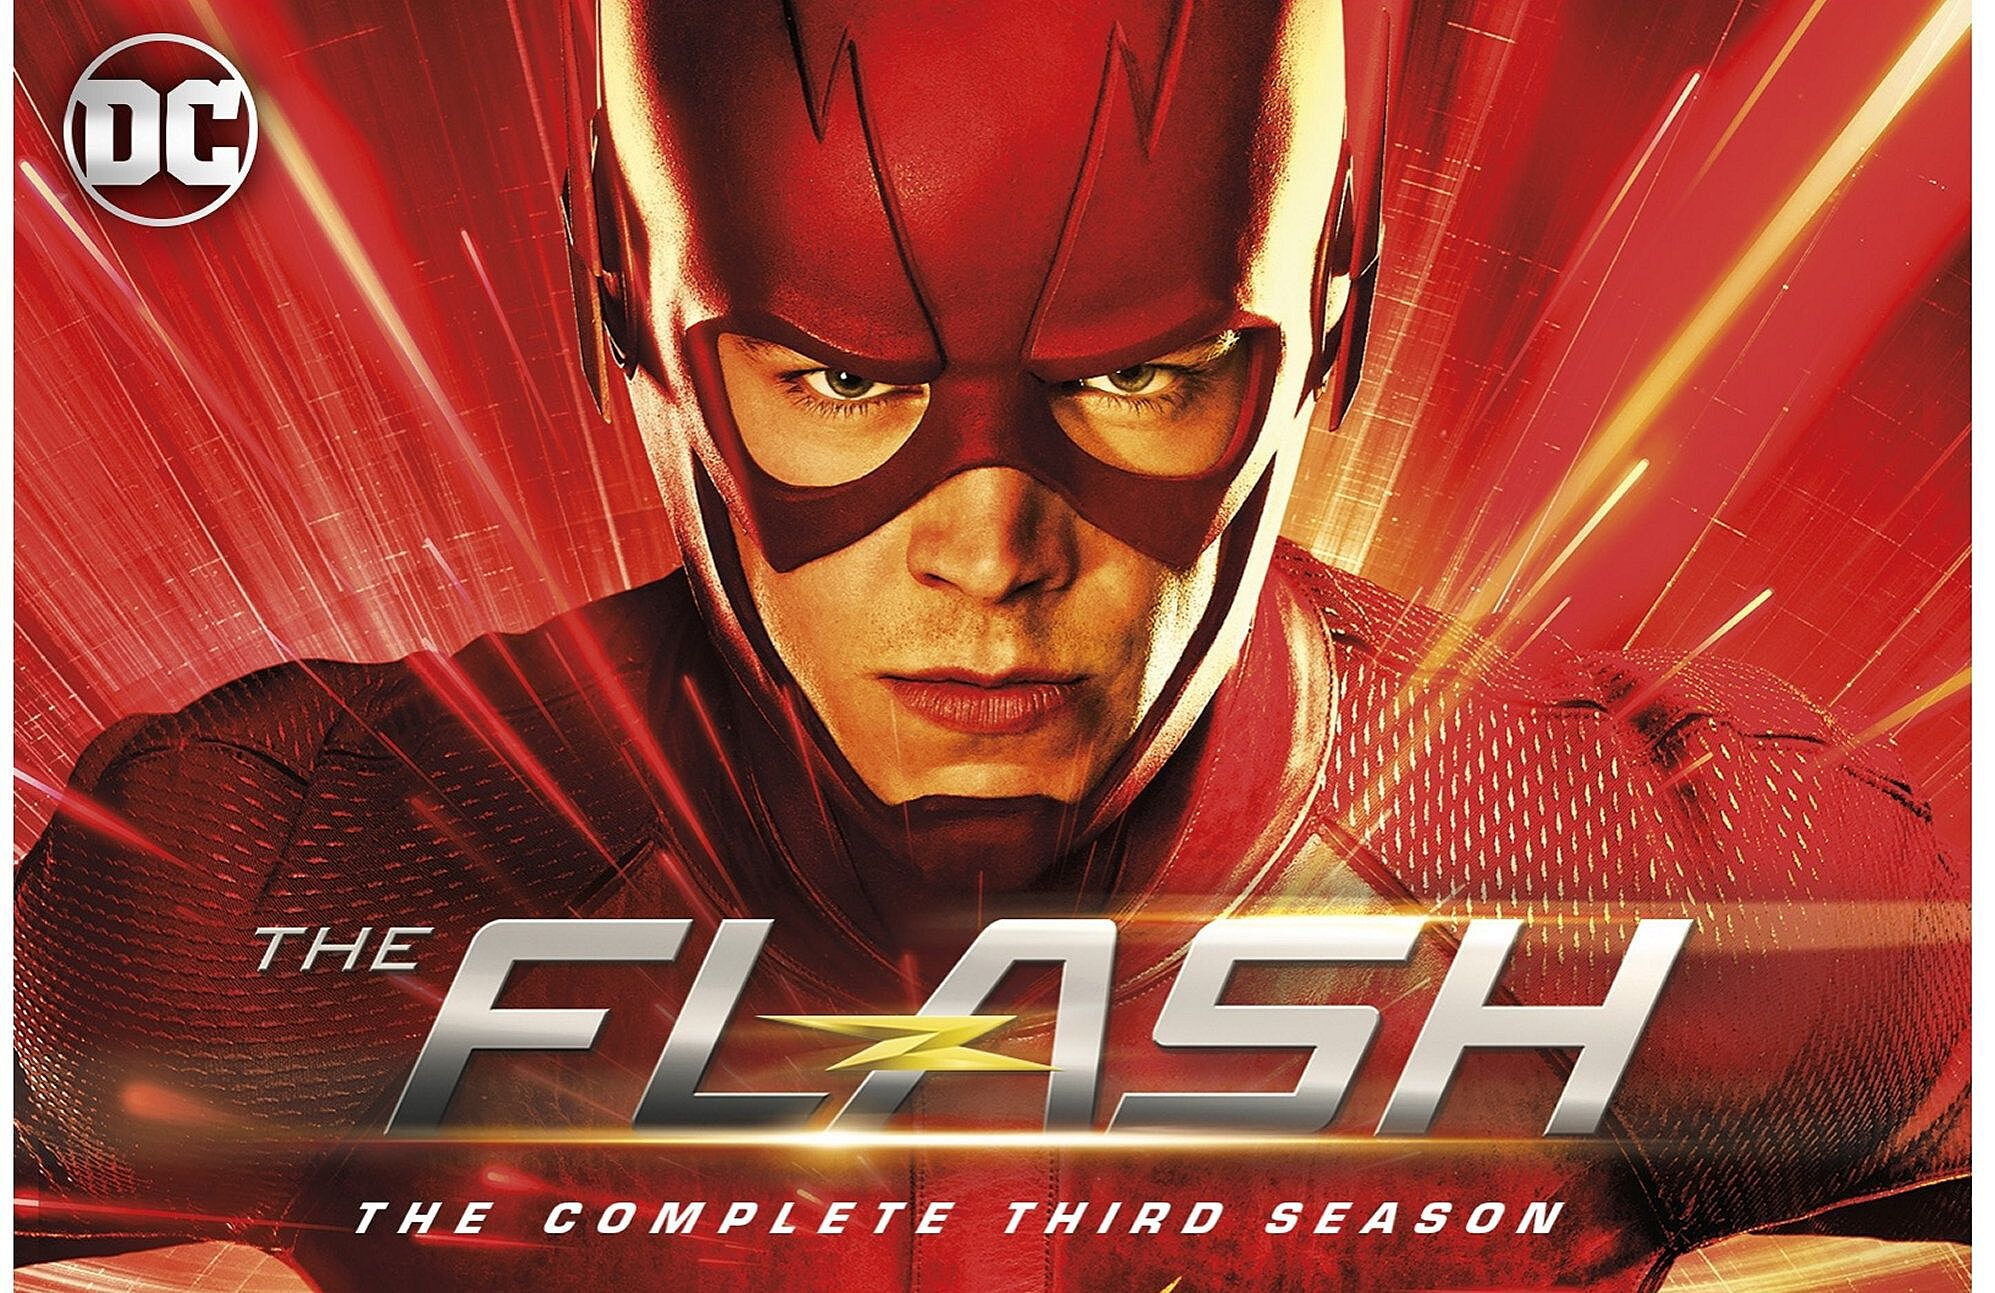 The Flash Season 3 Blu-Ray review: What to expect & why it's